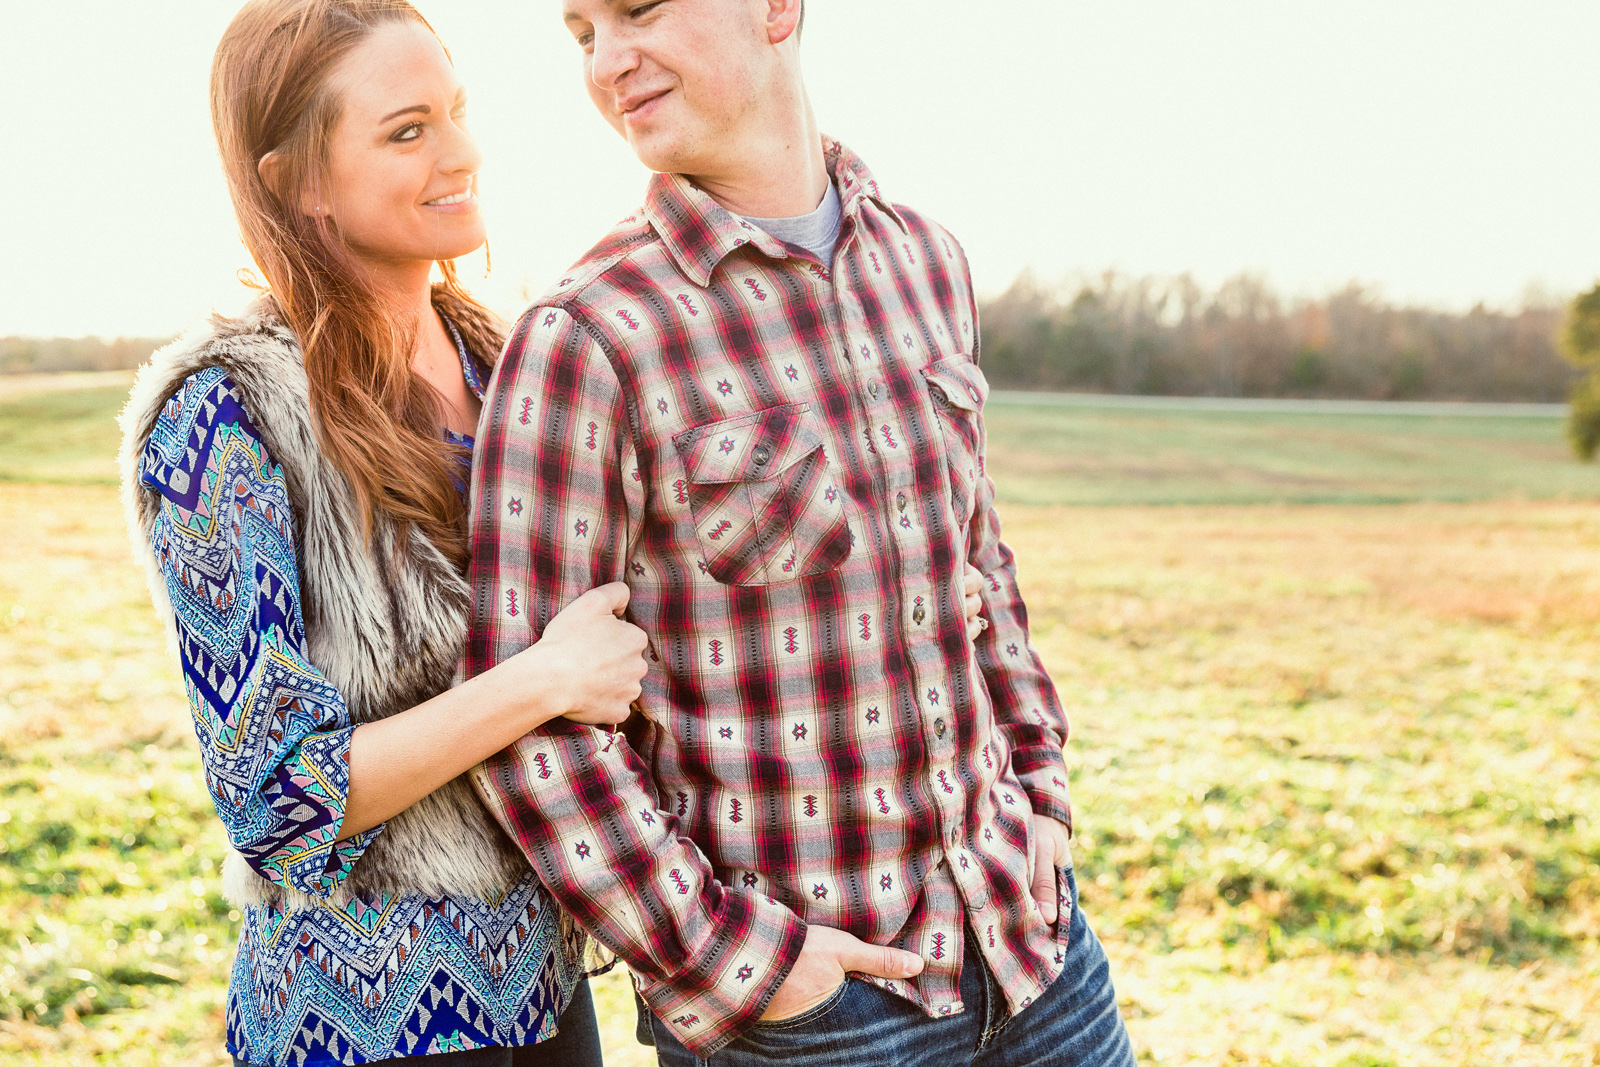 Oldani-Photography-St-Charles-August-A-Busch-Memorial-Area-Engagement-Session-engagement-photos_20141128_165521-2.jpg